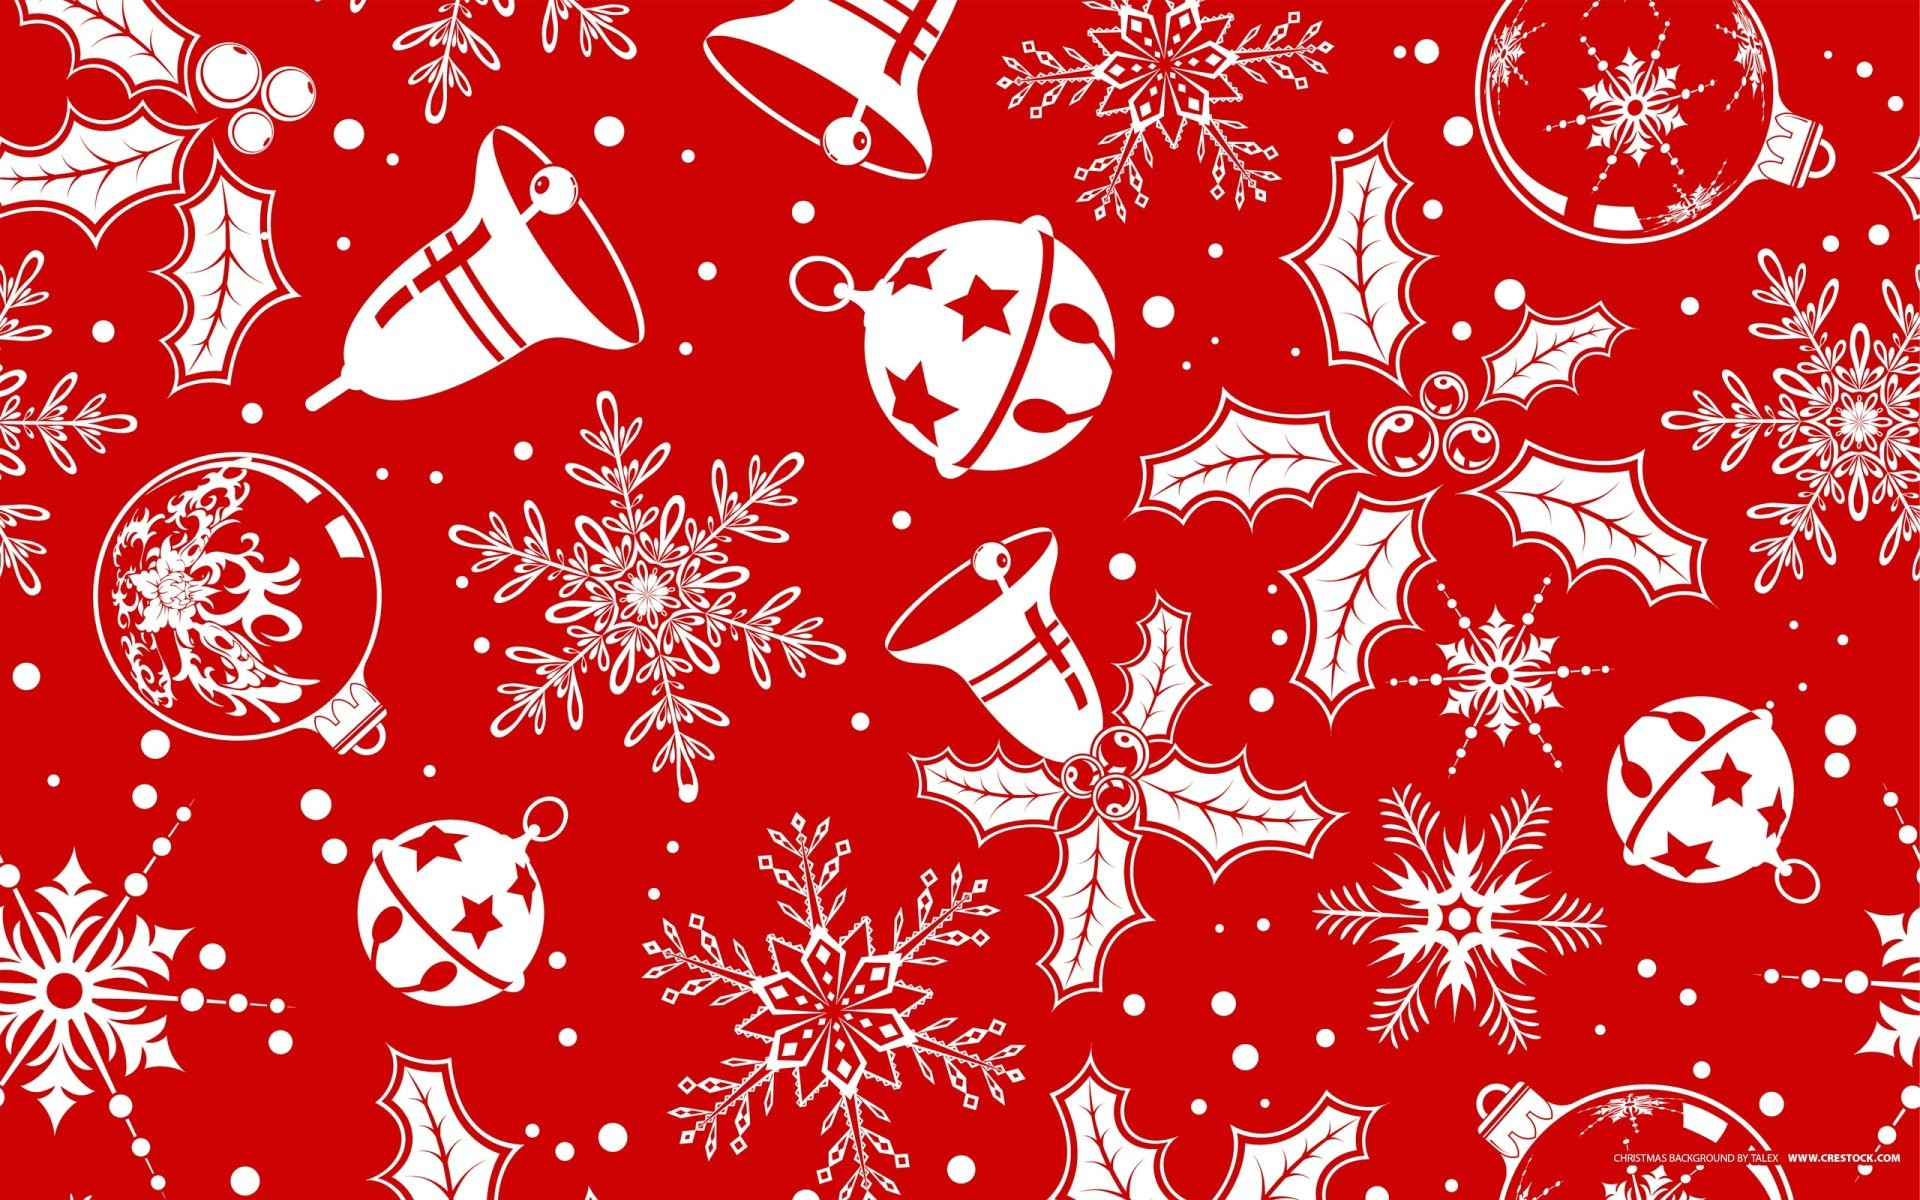 Res: 1920x1200, Wallpaper christmas gift paper